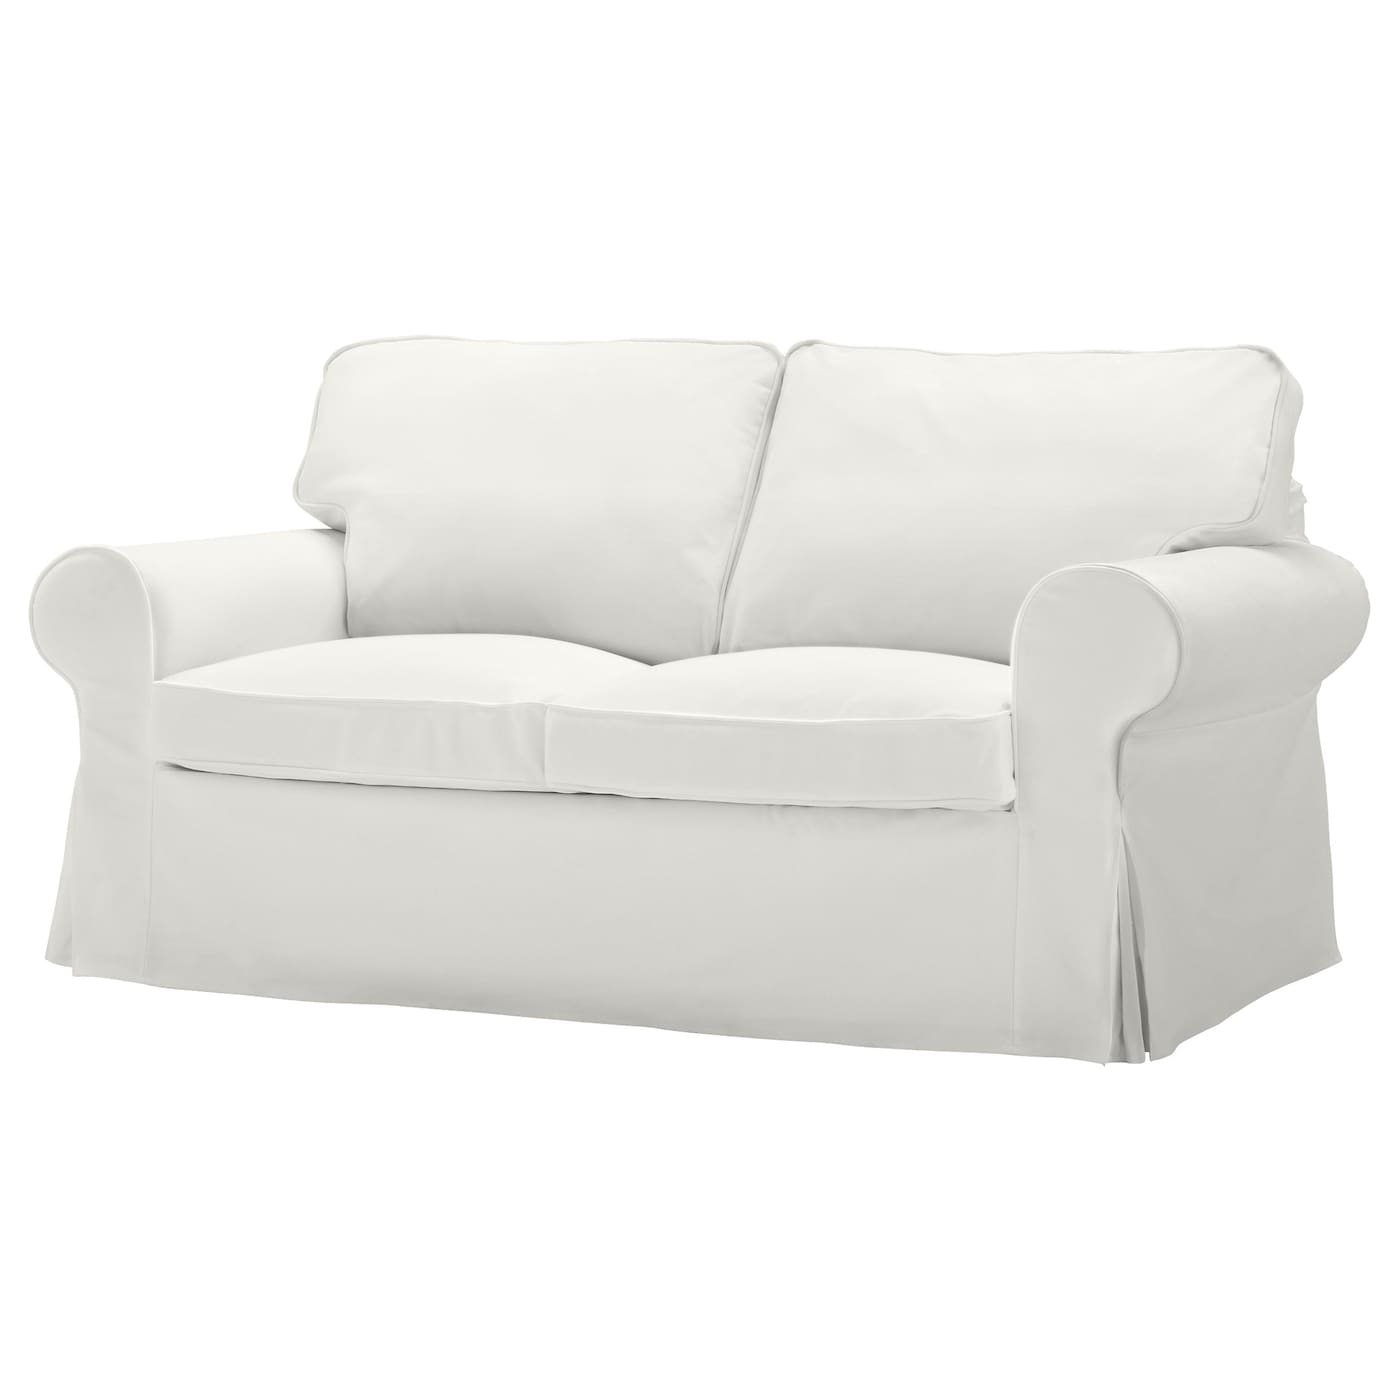 Ektorp two seat sofa blekinge white ikea for White divan chair